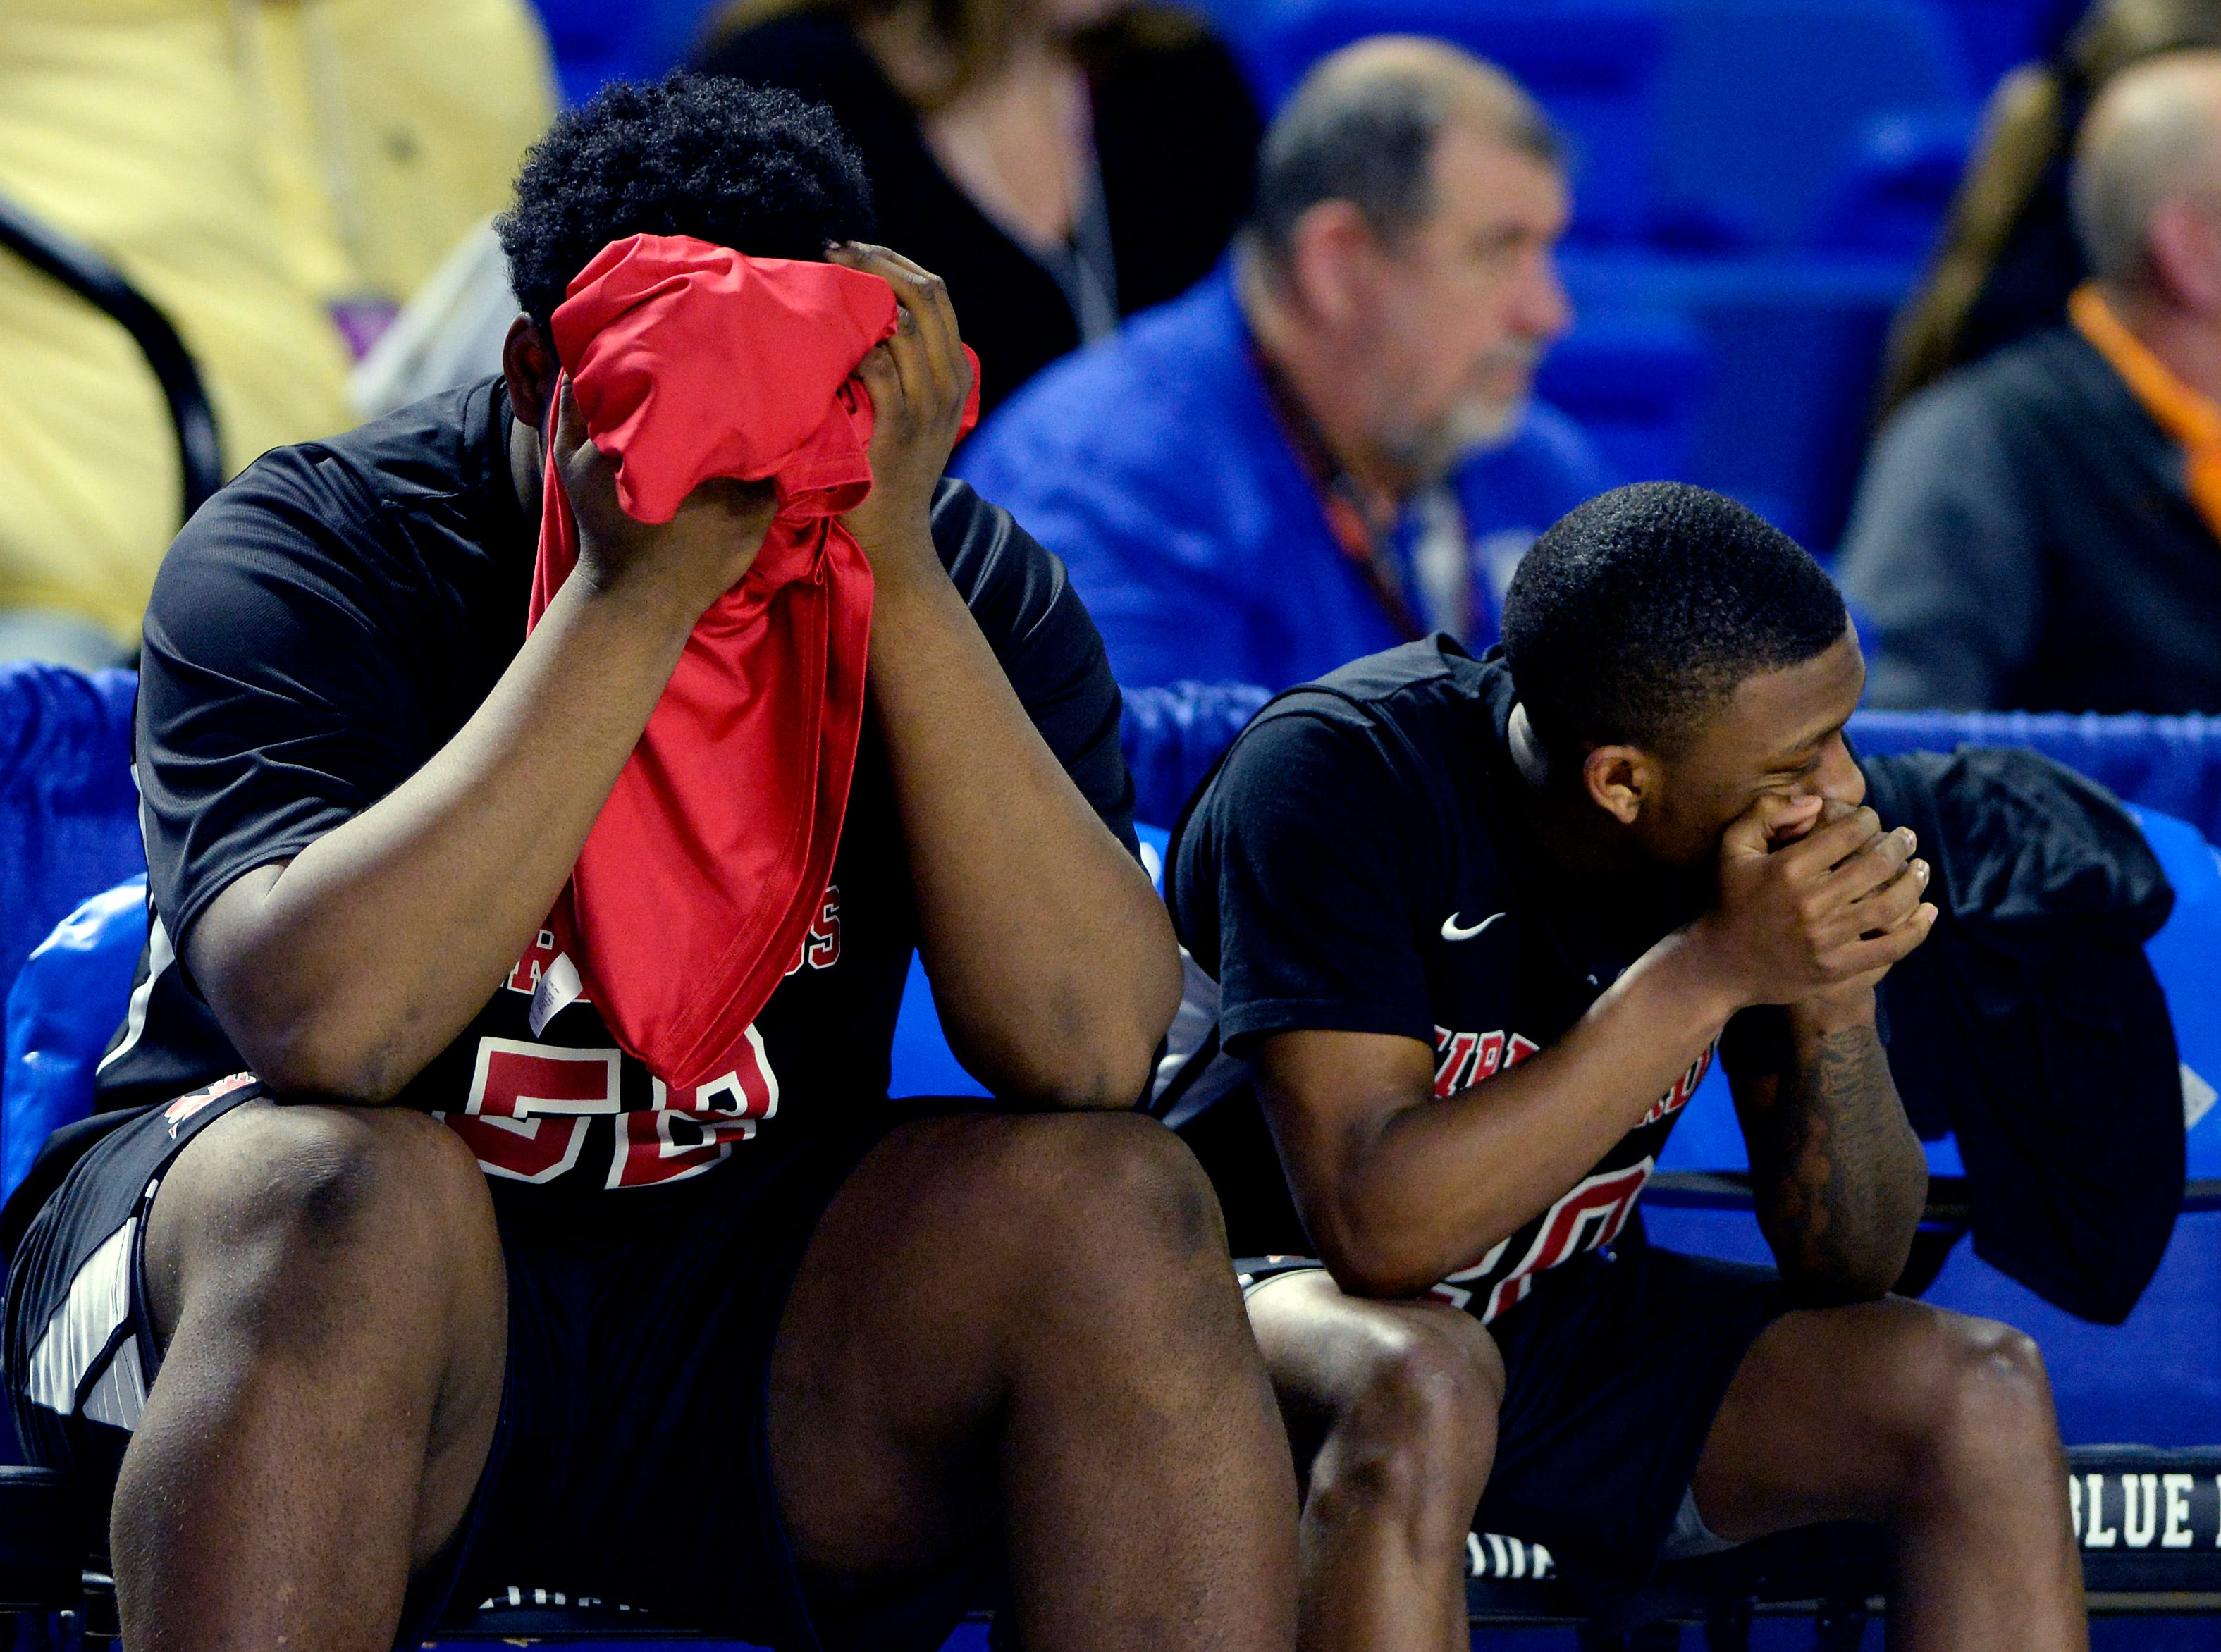 Pearl-Cohn forward Wiiliam Griffin, left, and guard Bobby Byrd (20) sit on the bench dejected as the final seconds run off the clock during the second half of an Class AA boys' state basketball quarterfinal game against Brainerd Wednesday, March 13, 2019, in Murfreesboro, Tenn. Brainerd won 76-73.